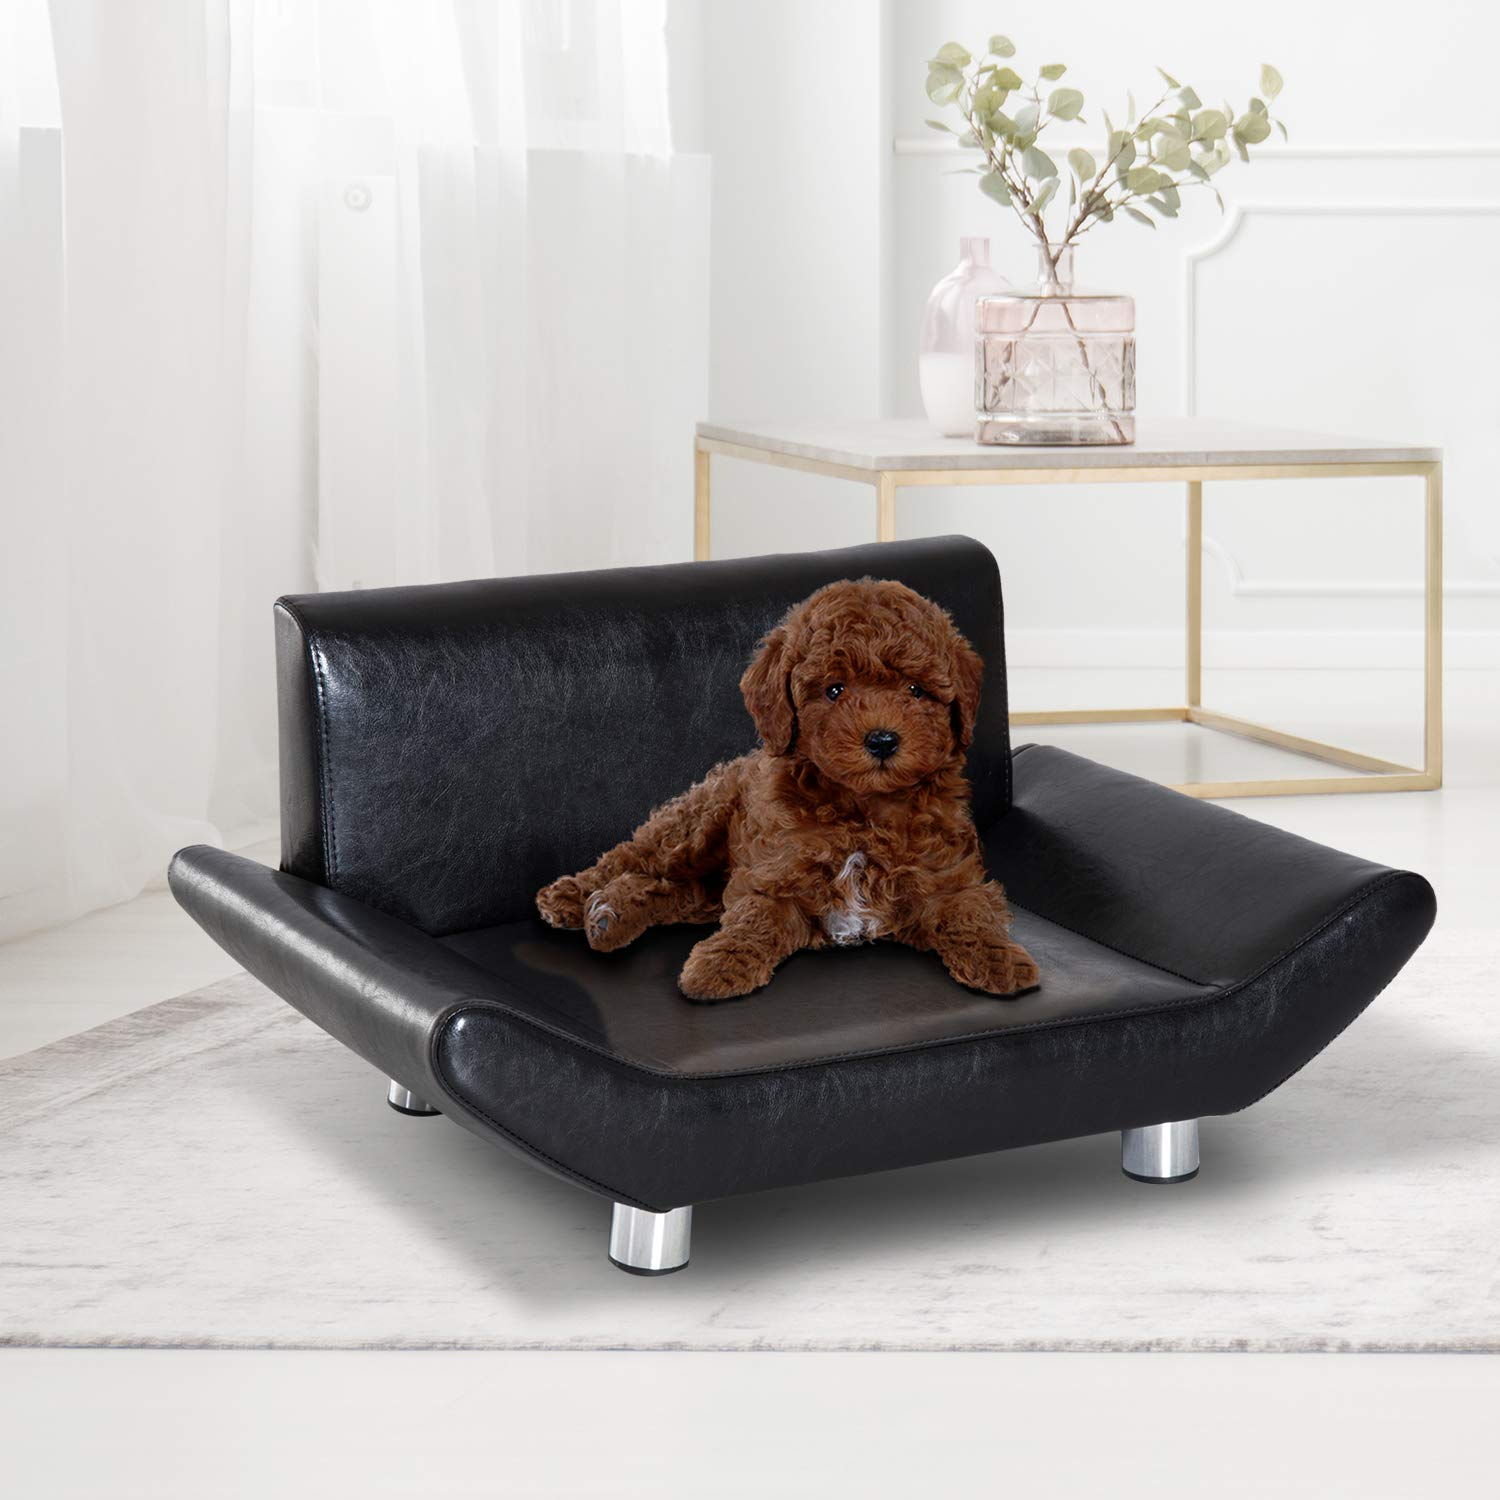 Sensational Pawhut Pet Sofa Chair Dog Cat Kitten Couch Bed Furniture Faux Leather Seater Black Machost Co Dining Chair Design Ideas Machostcouk